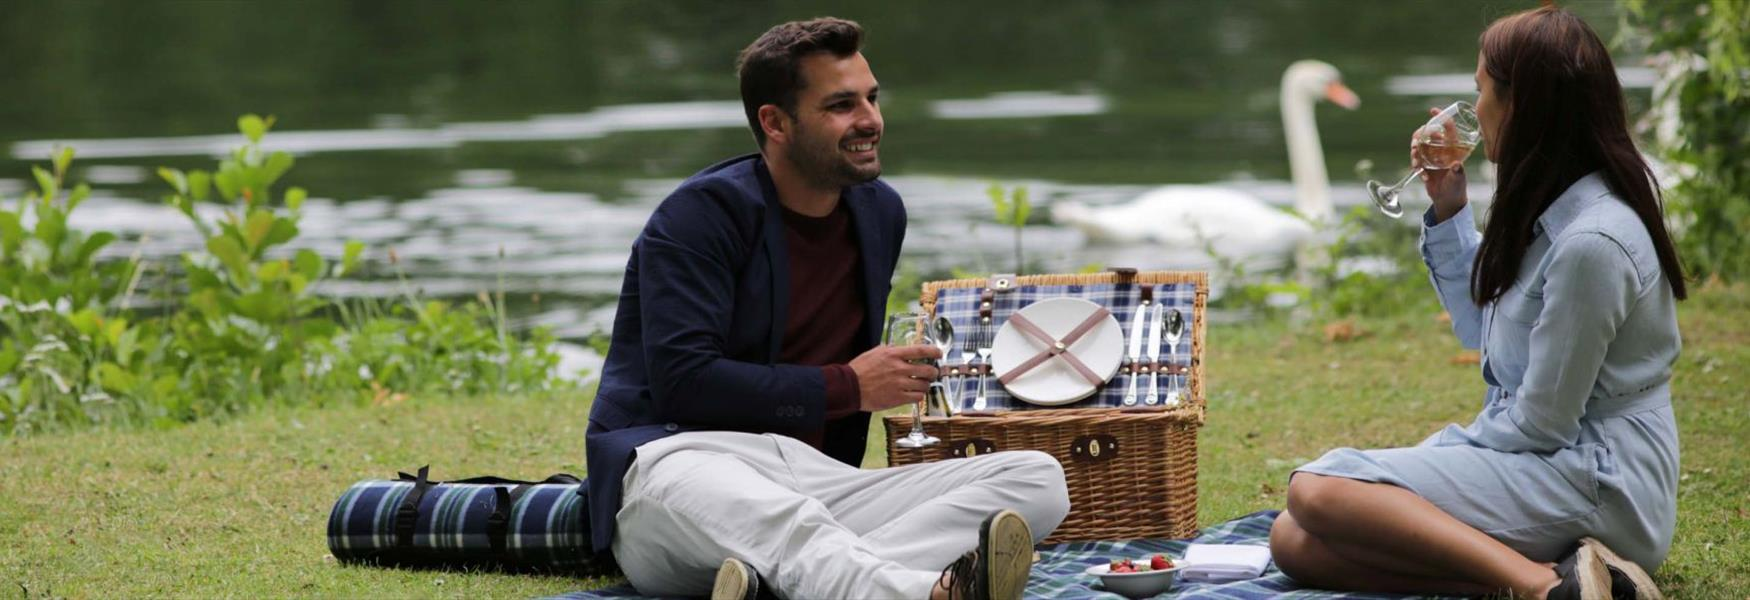 Two people enjoying a picnic by the River Thames at Runnymede